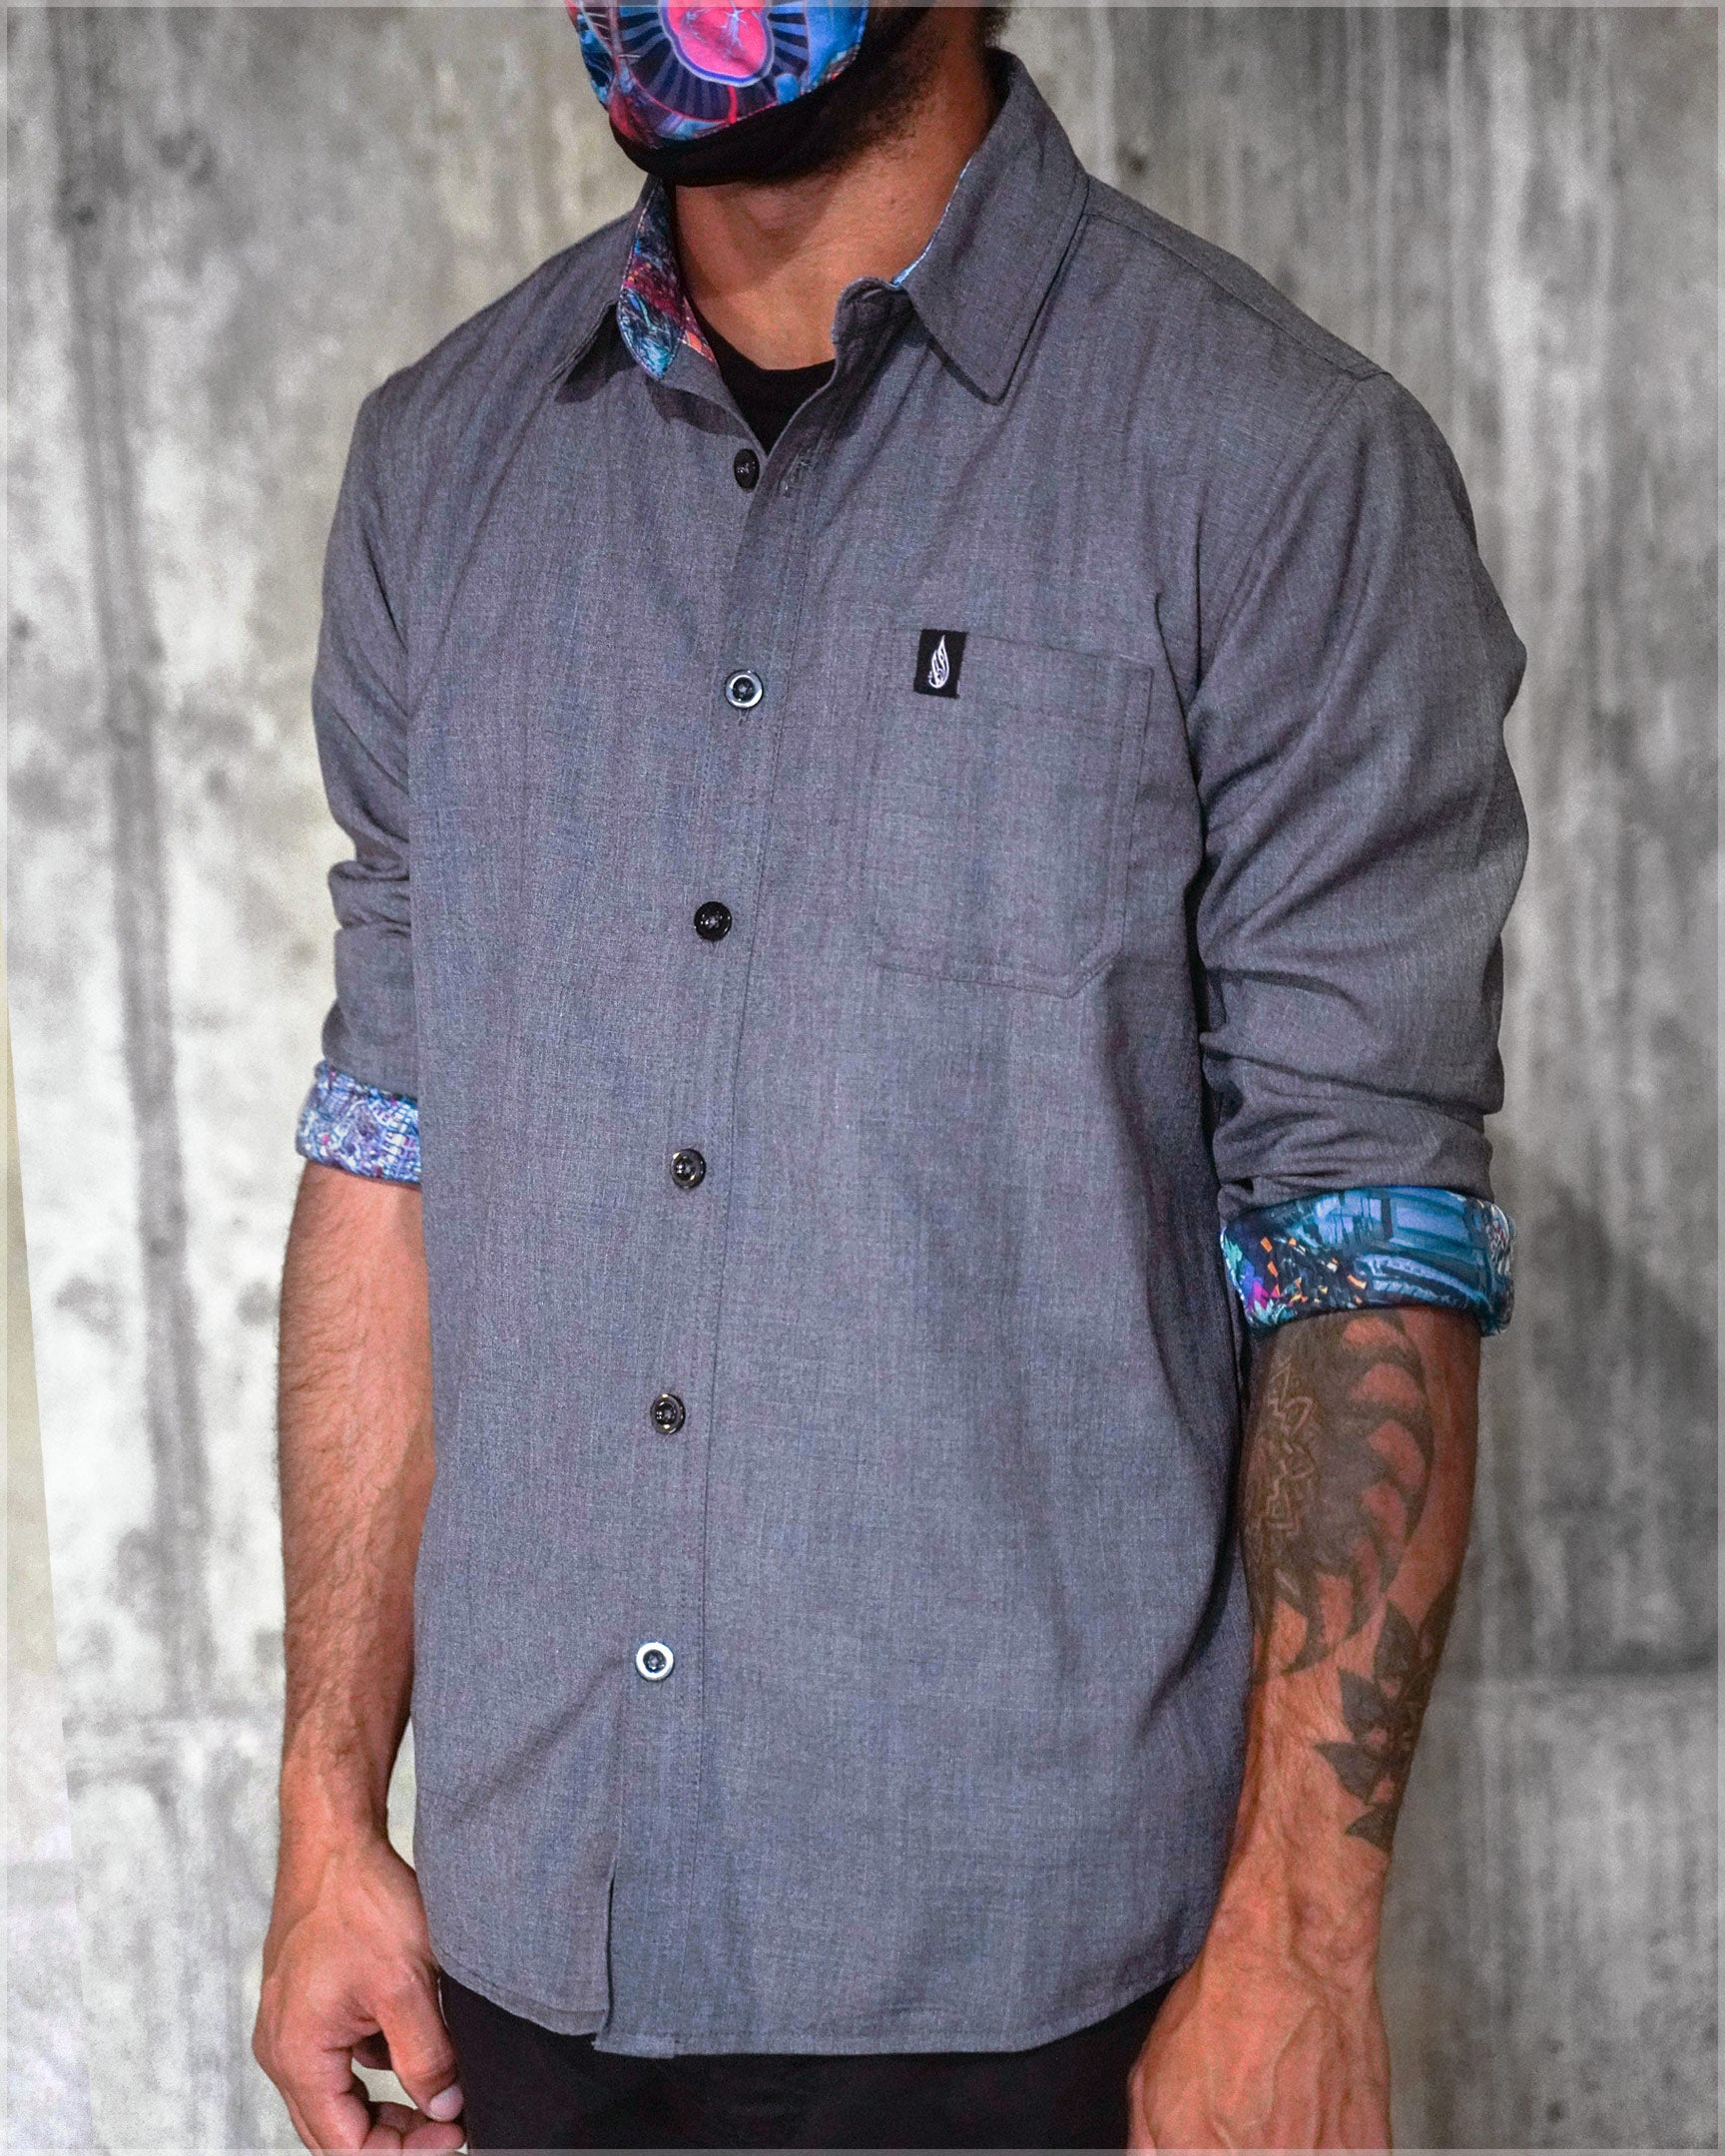 Terra Cuda Button Down Shirt by Android Jones